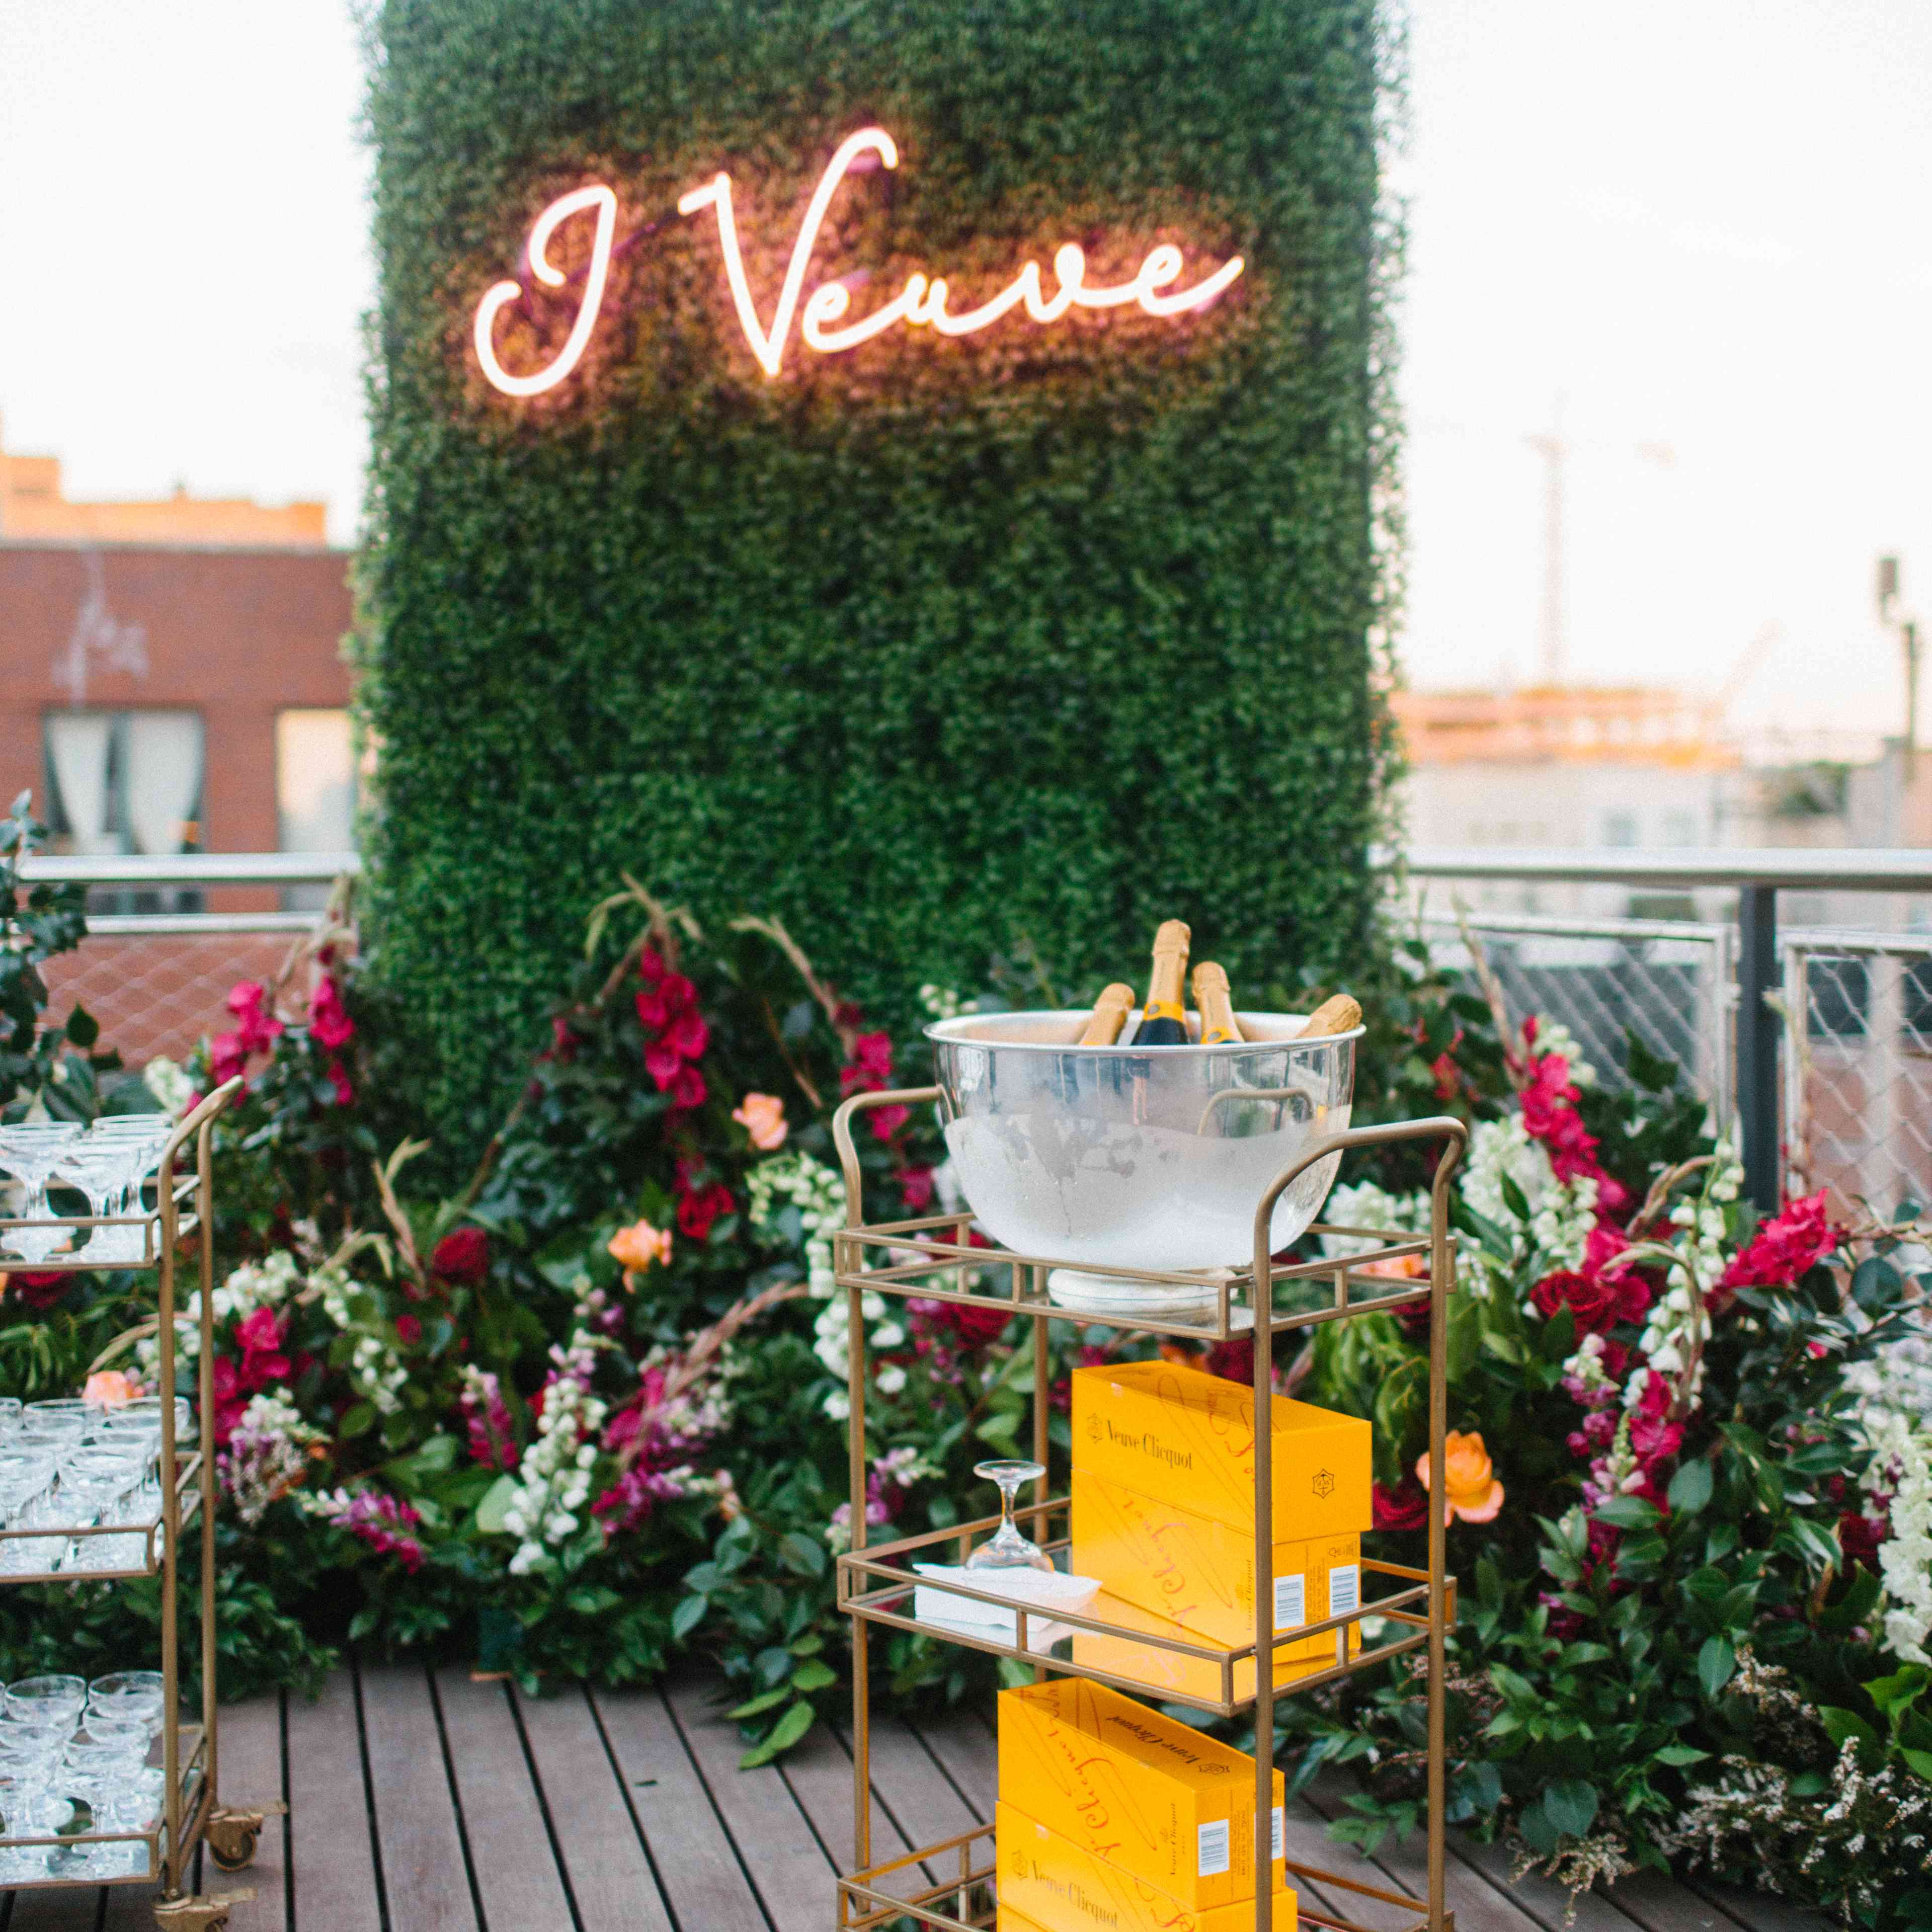 Neon sign backdrop to champagne bar cart